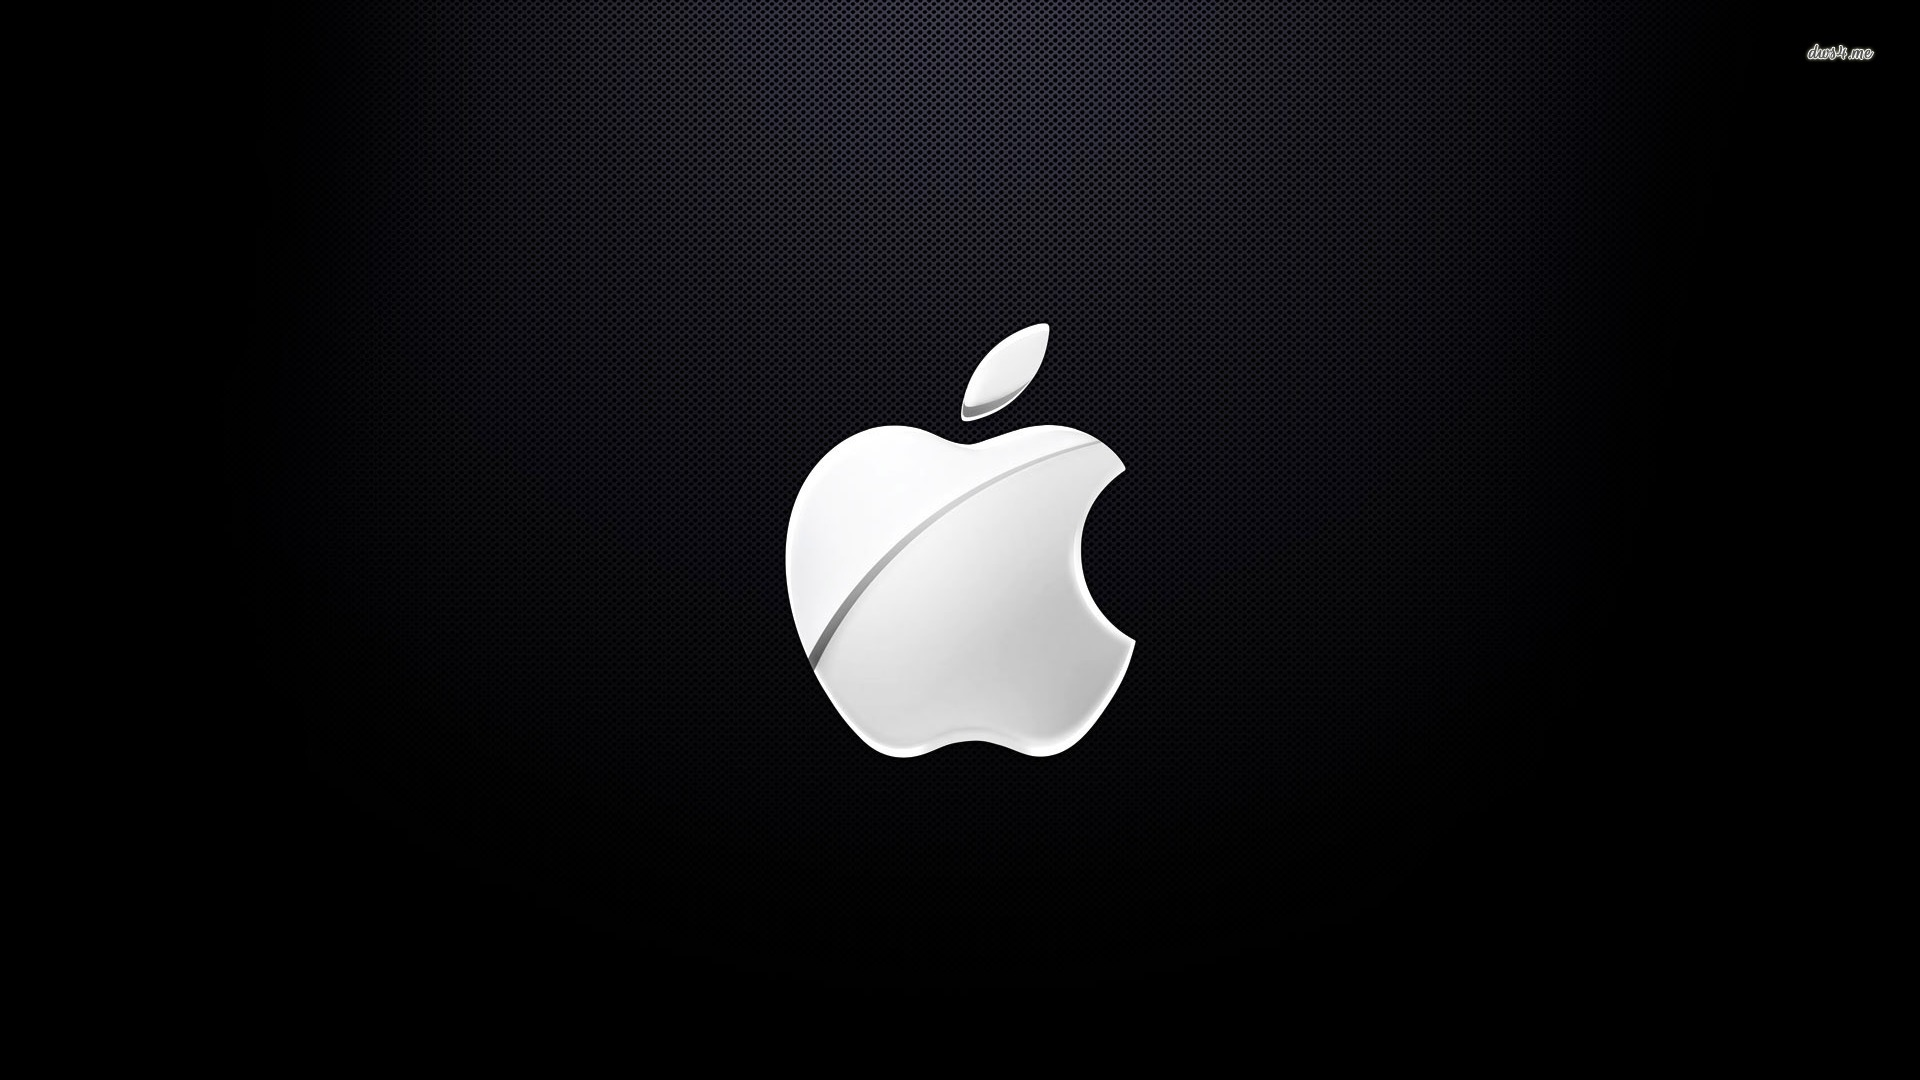 Black And White Apple Wallpaper 1920x1080